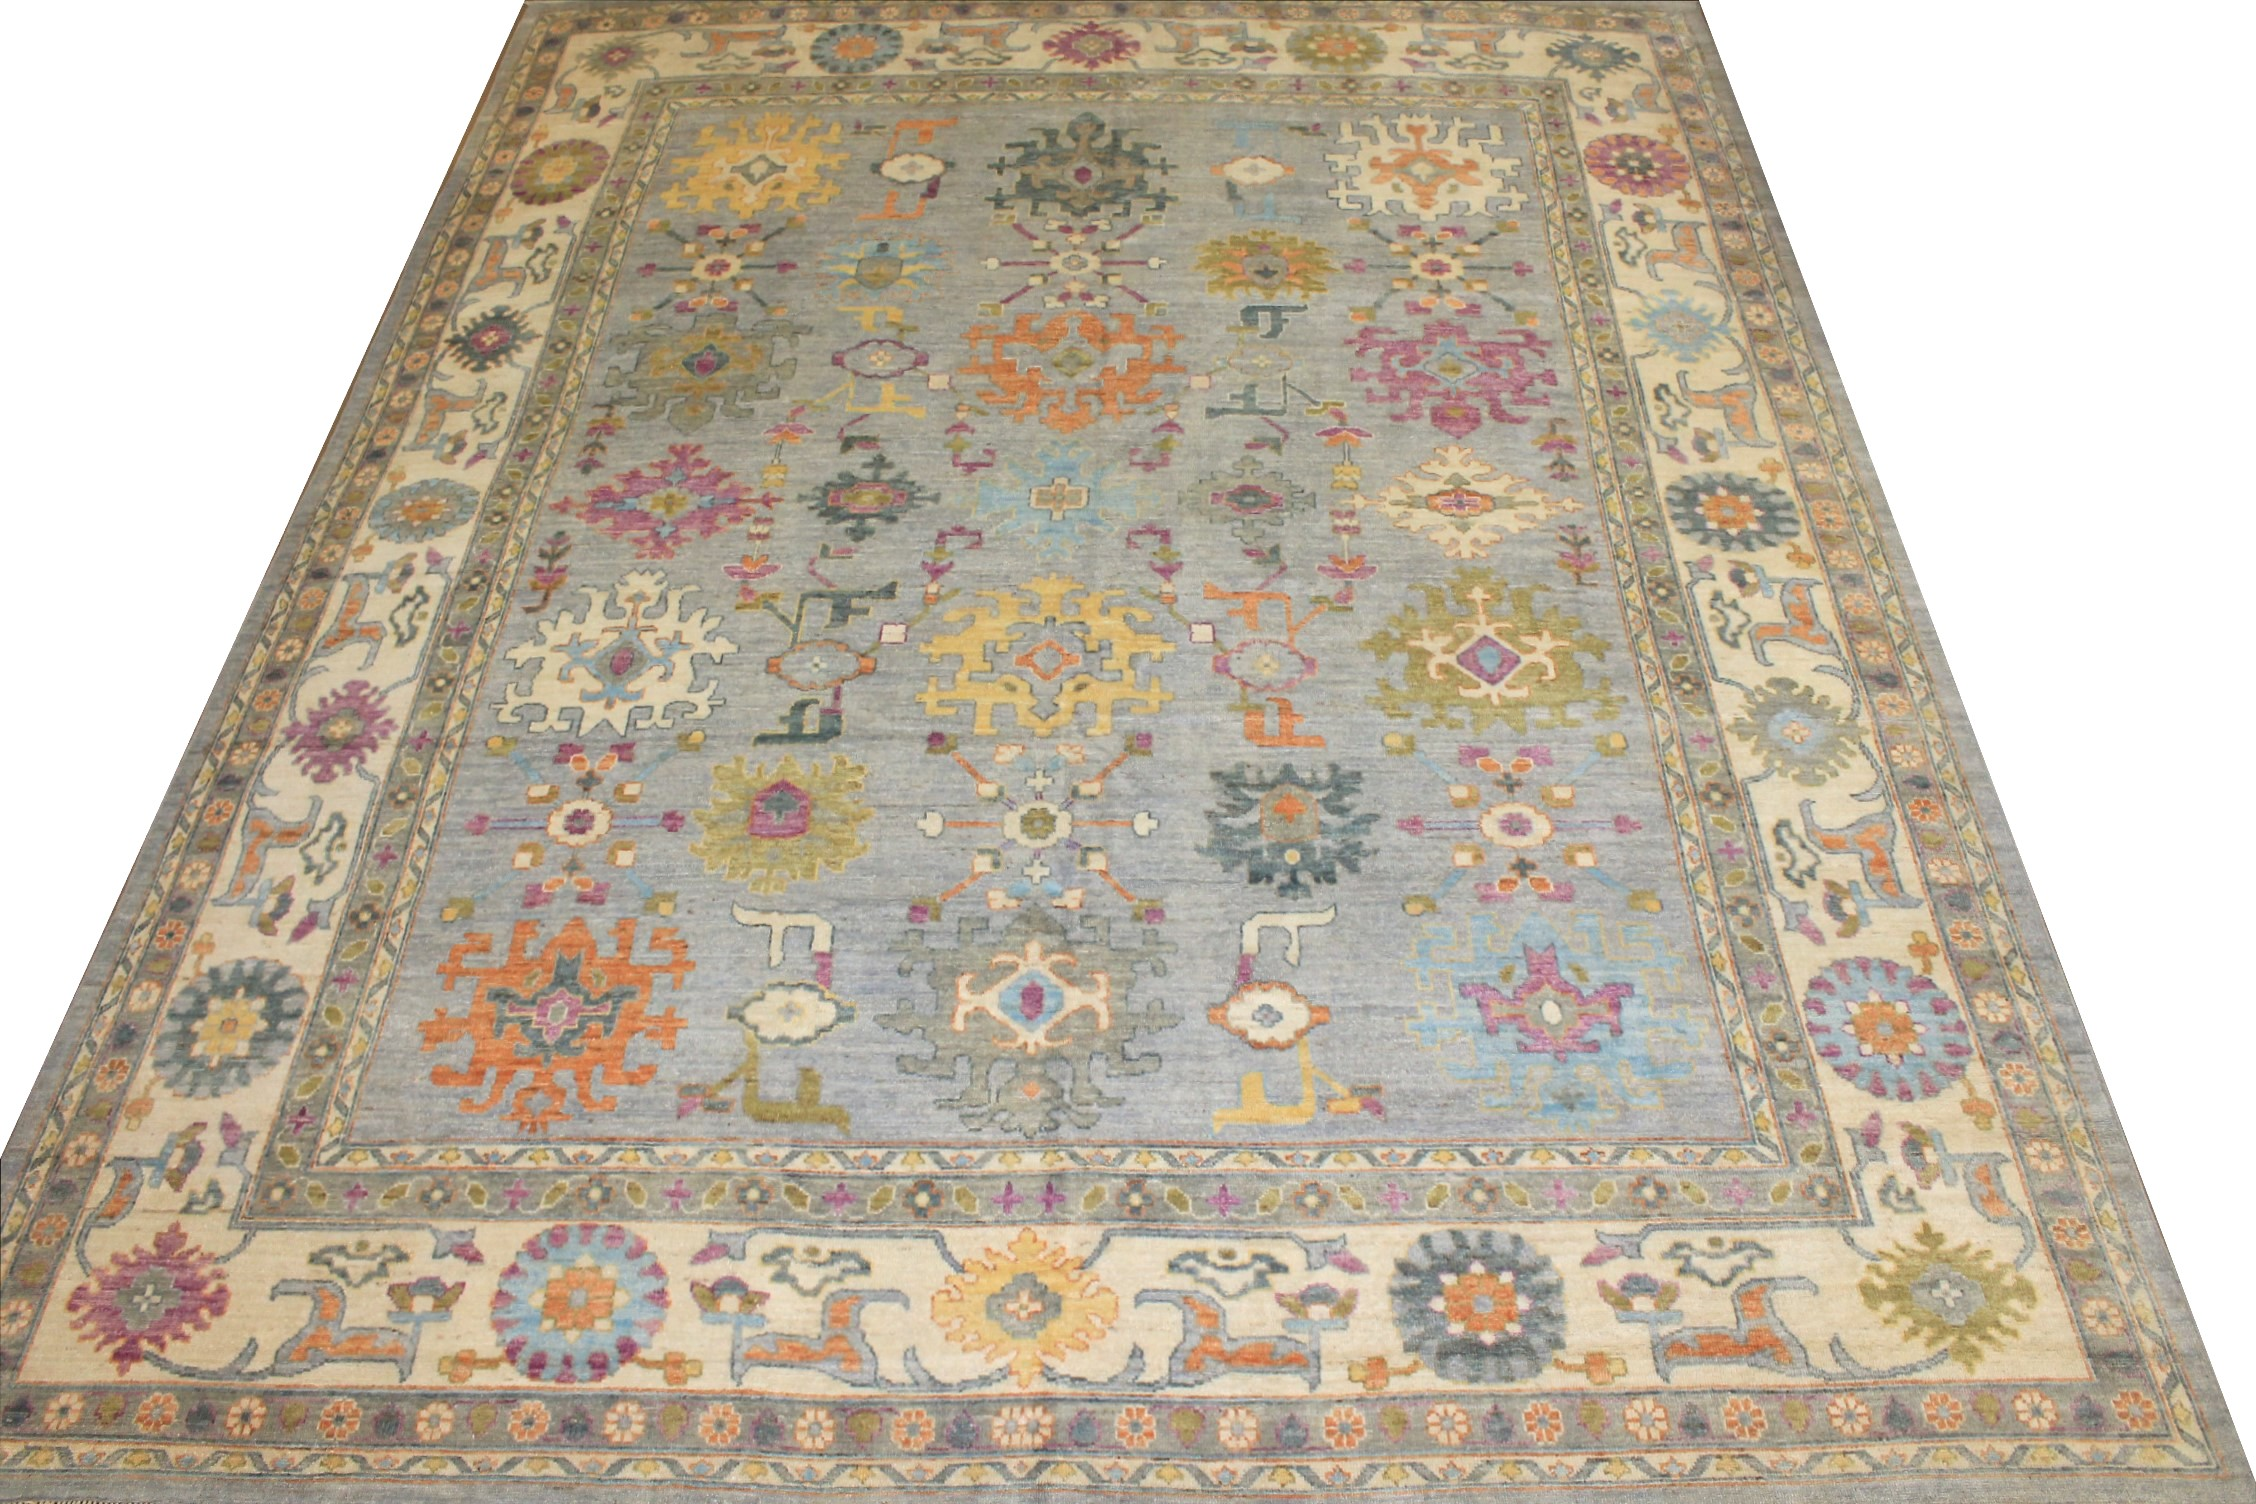 OVERSIZE Oushak Hand Knotted Wool Area Rug - MR024722